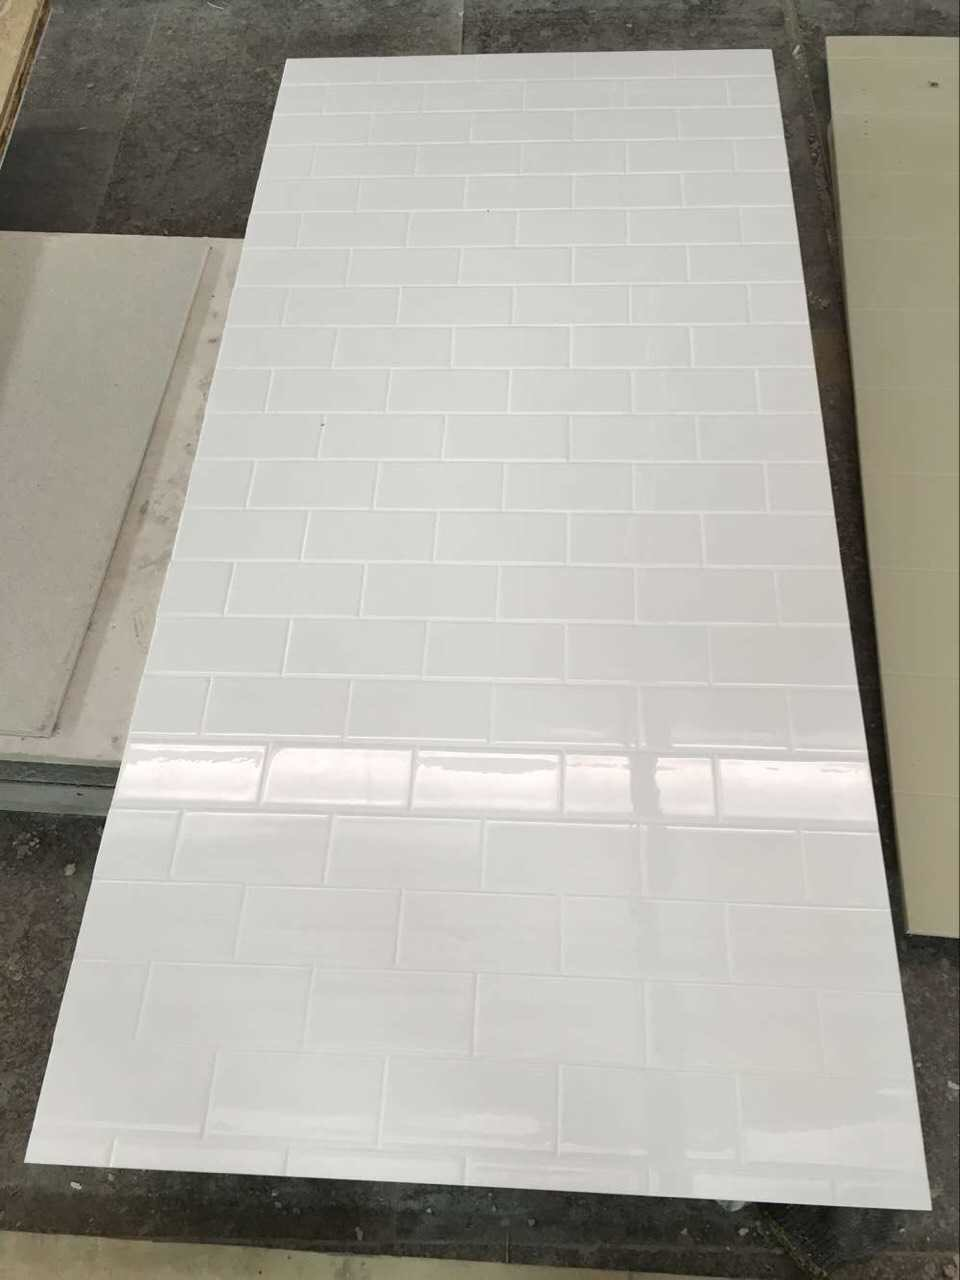 Refinish Cultured Marble Marble Top Bath Marble Colors For Flooring Solid Marble Marble Products Company Fake Marble Floor Solid Granite Shower Walls White Artificial Marble